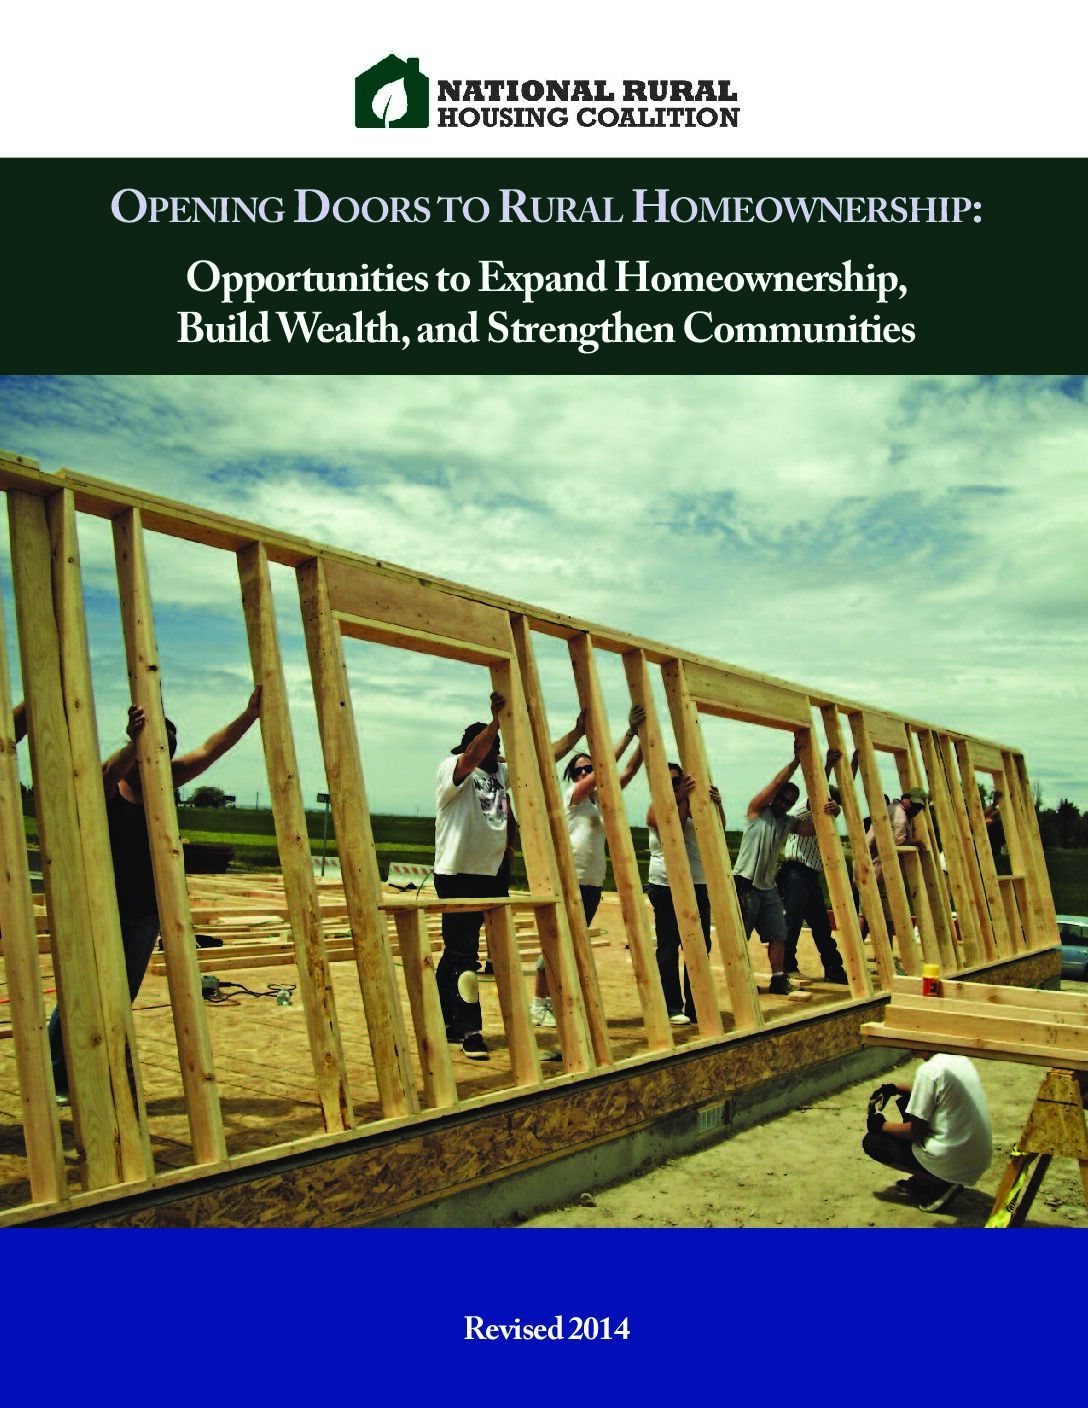 Opening Doors to Rural Homeownership (2014)